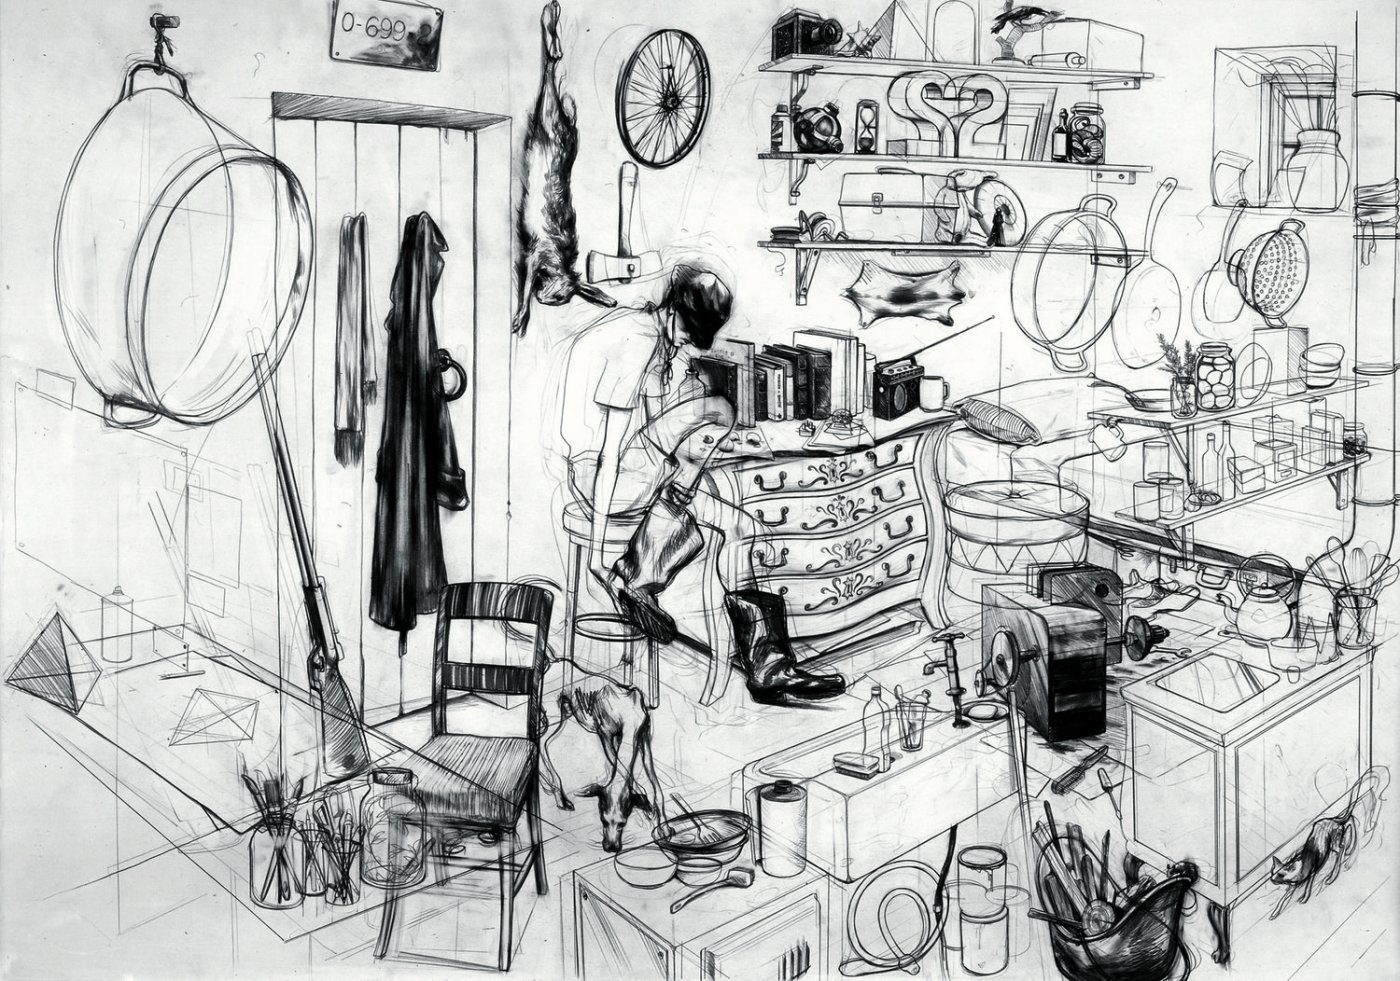 Charles Avery The Hunter's Cabin 2004 Pencil on paper 91 x 66 cm © Charles Avery. Courtesy of the artist and Pilar Corrias, London and Grimm Fine Art, Amsterdam. UBS Art Collection